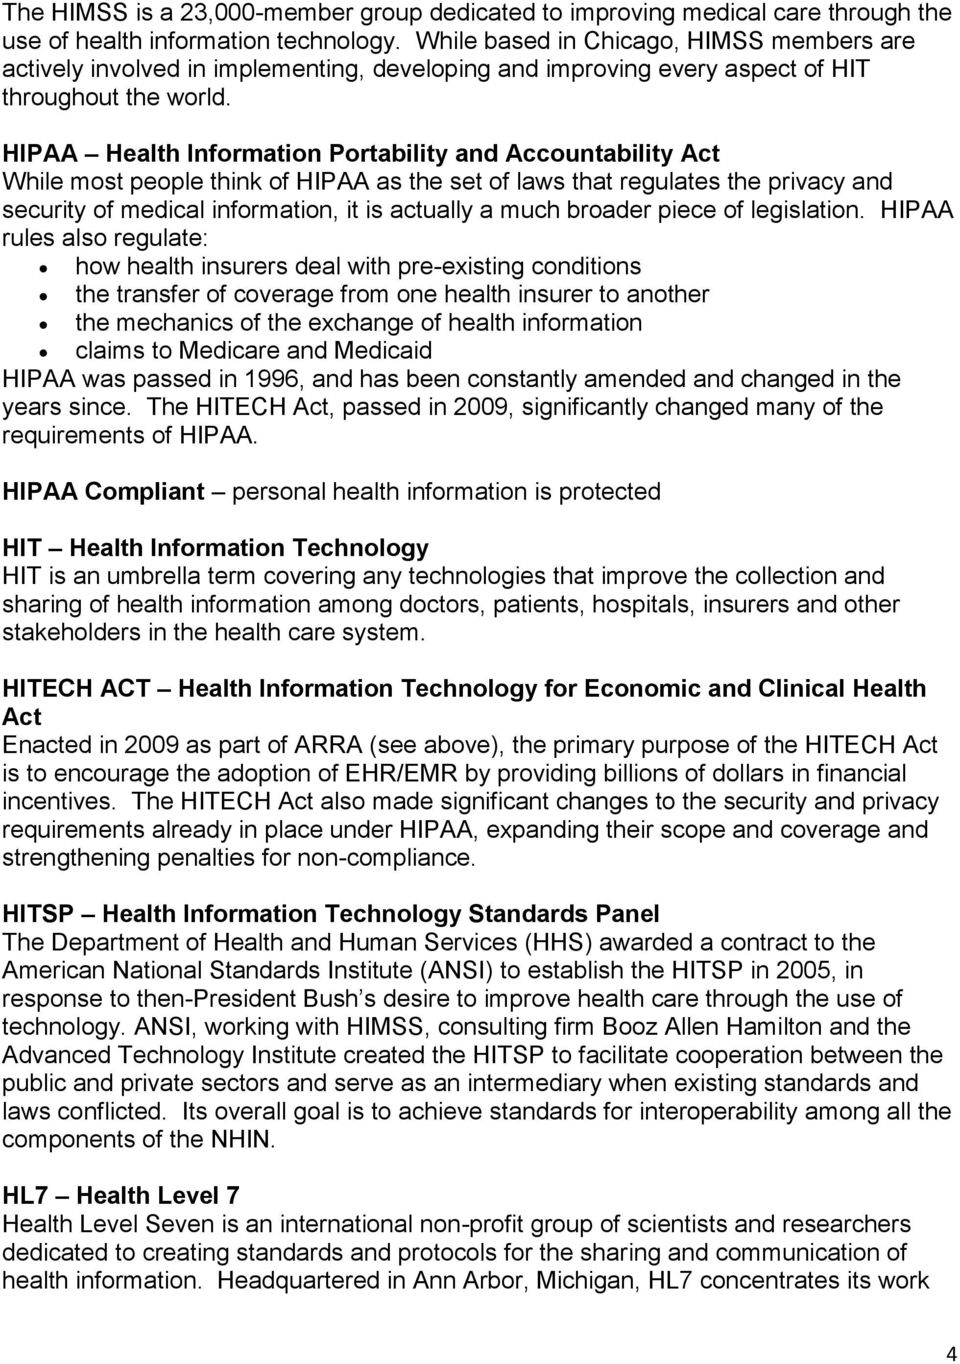 HIPAA Health Information Portability and Accountability Act While most people think of HIPAA as the set of laws that regulates the privacy and security of medical information, it is actually a much